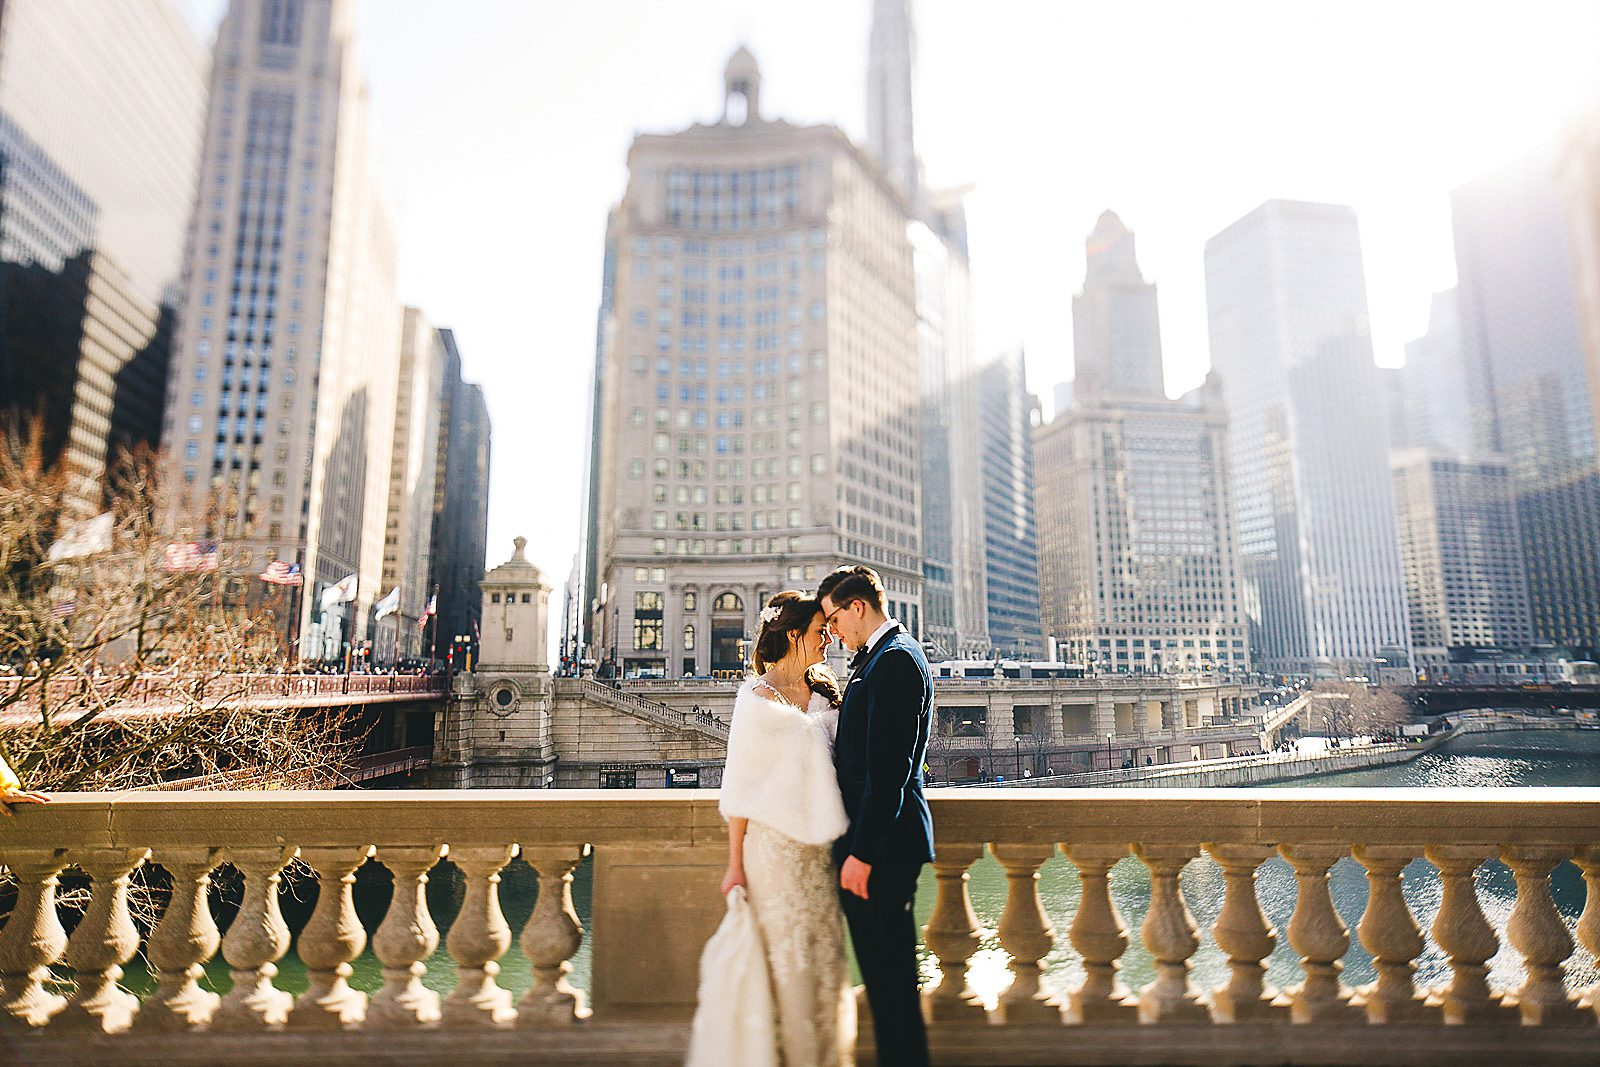 15 chicago wedding photograhy - The Wedding of Samantha + Kyle in Chicago